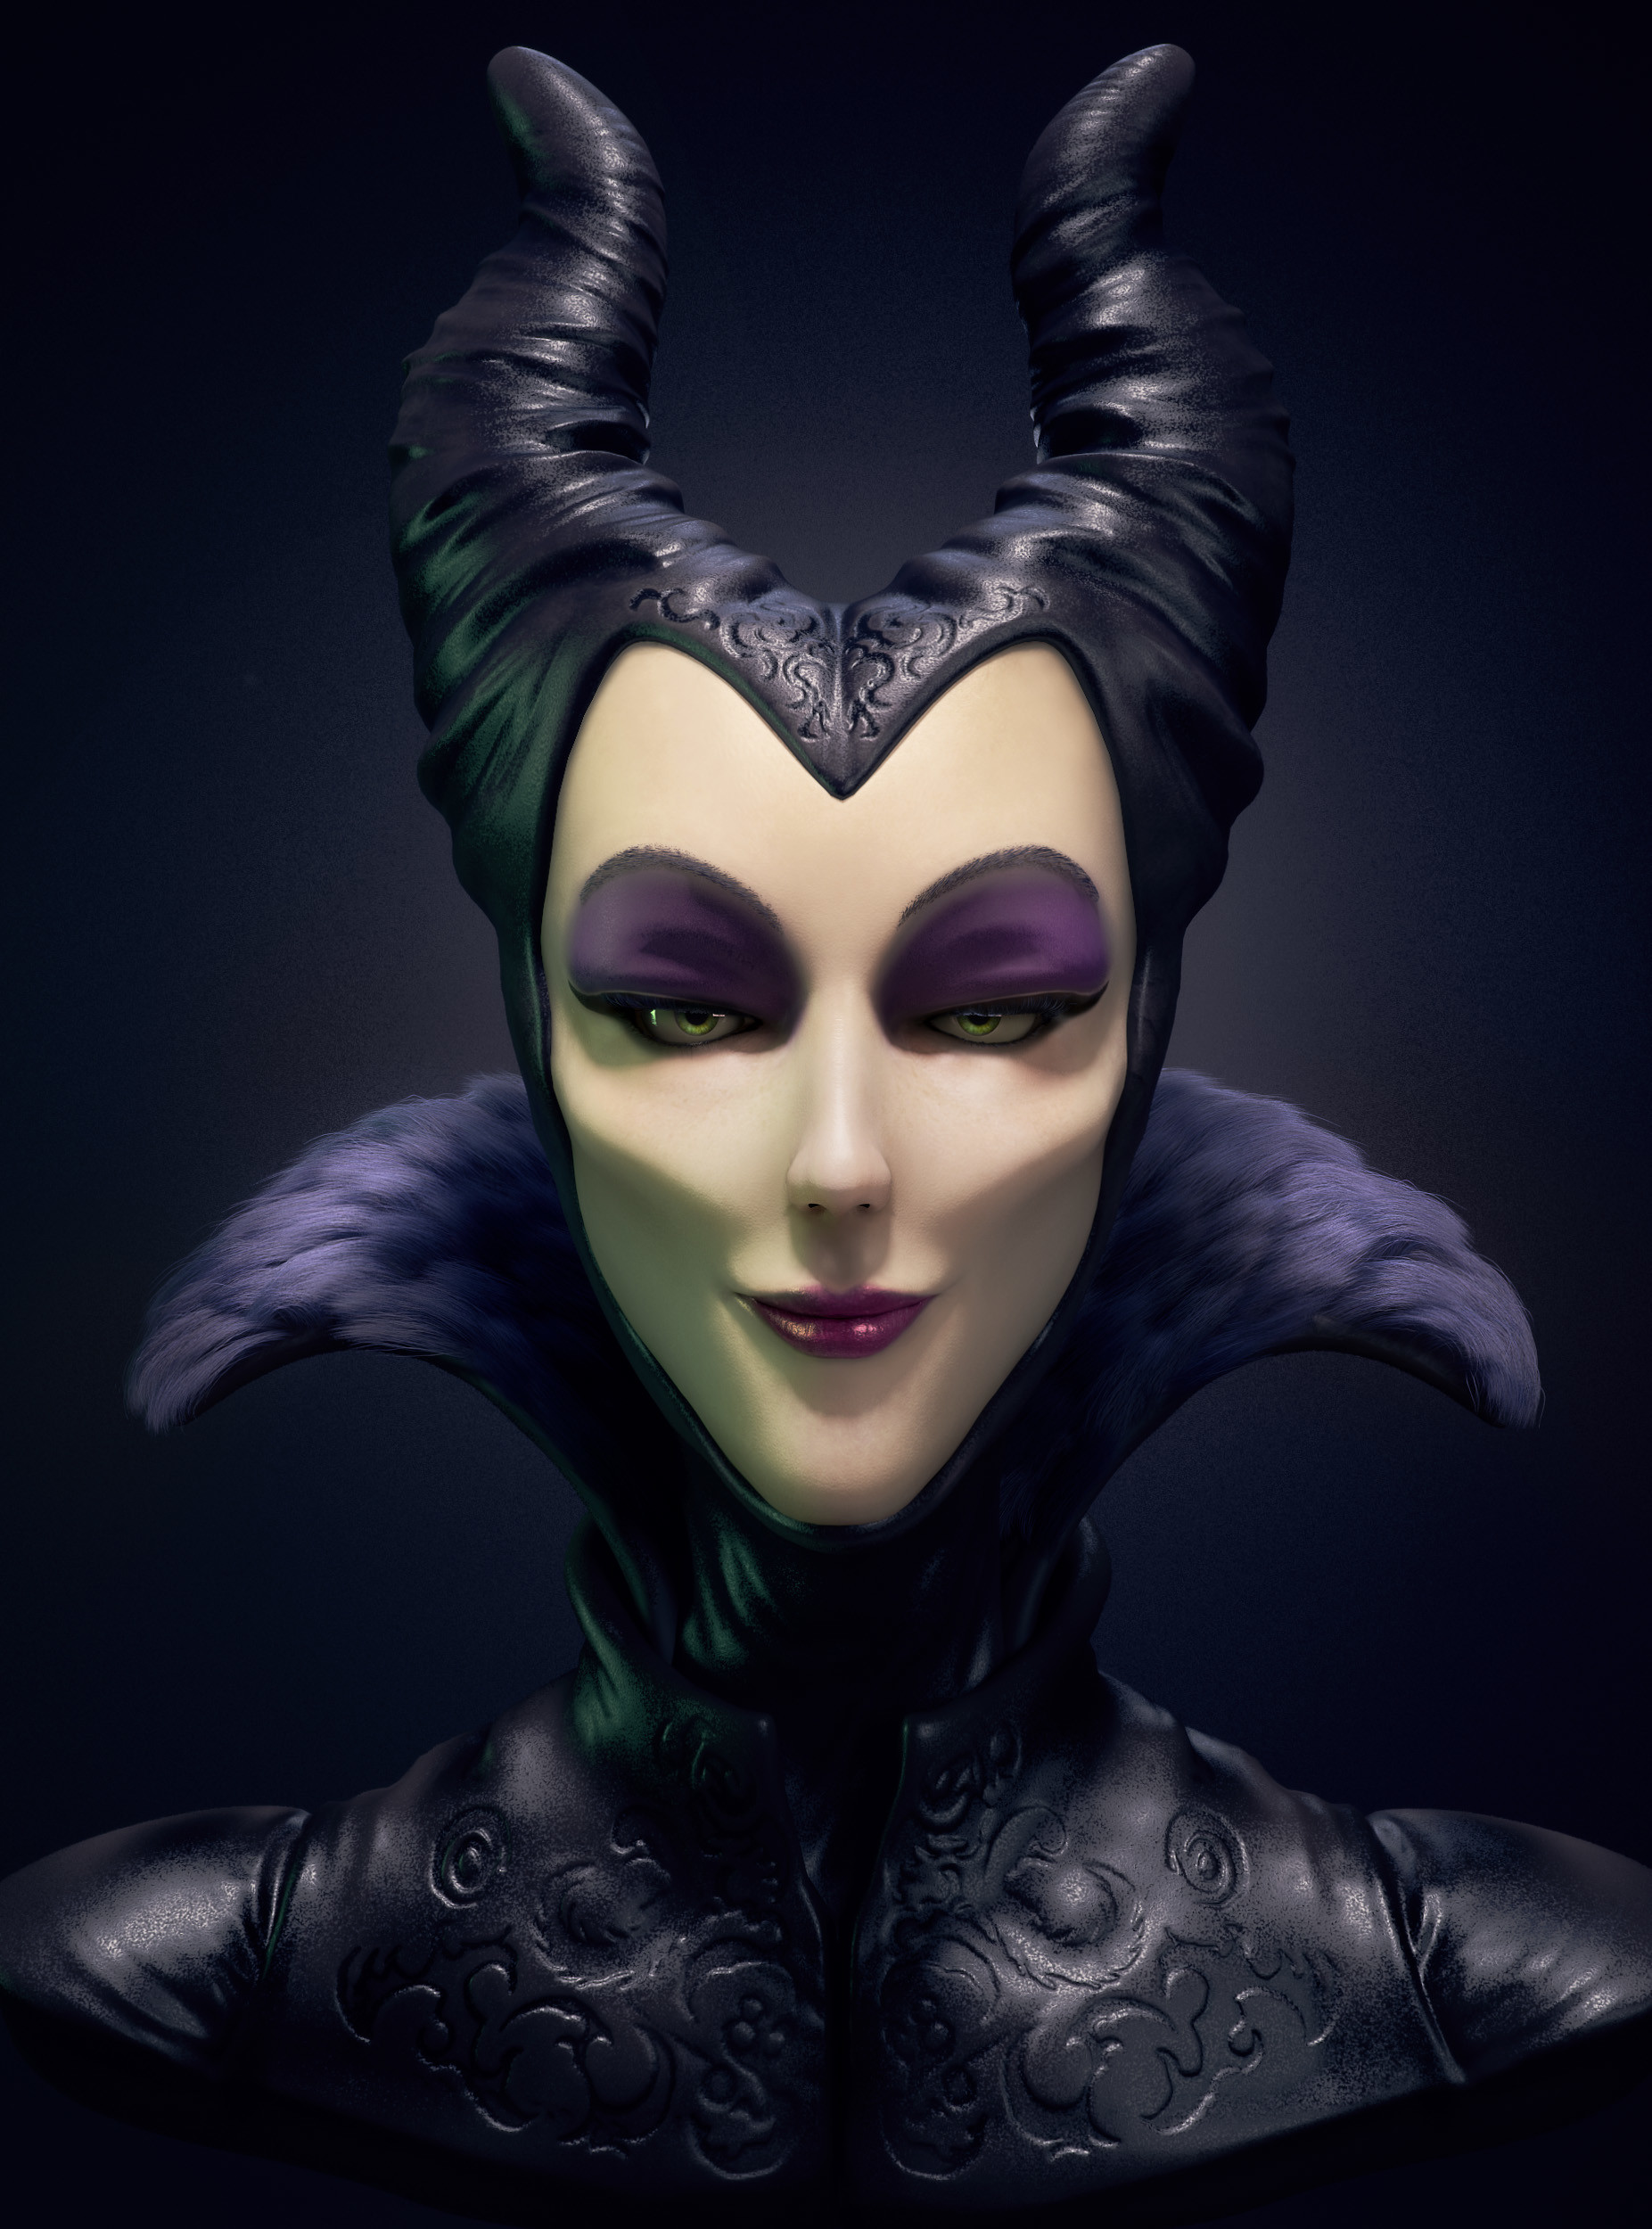 Artstation Maleficent Luan Correa Pinto